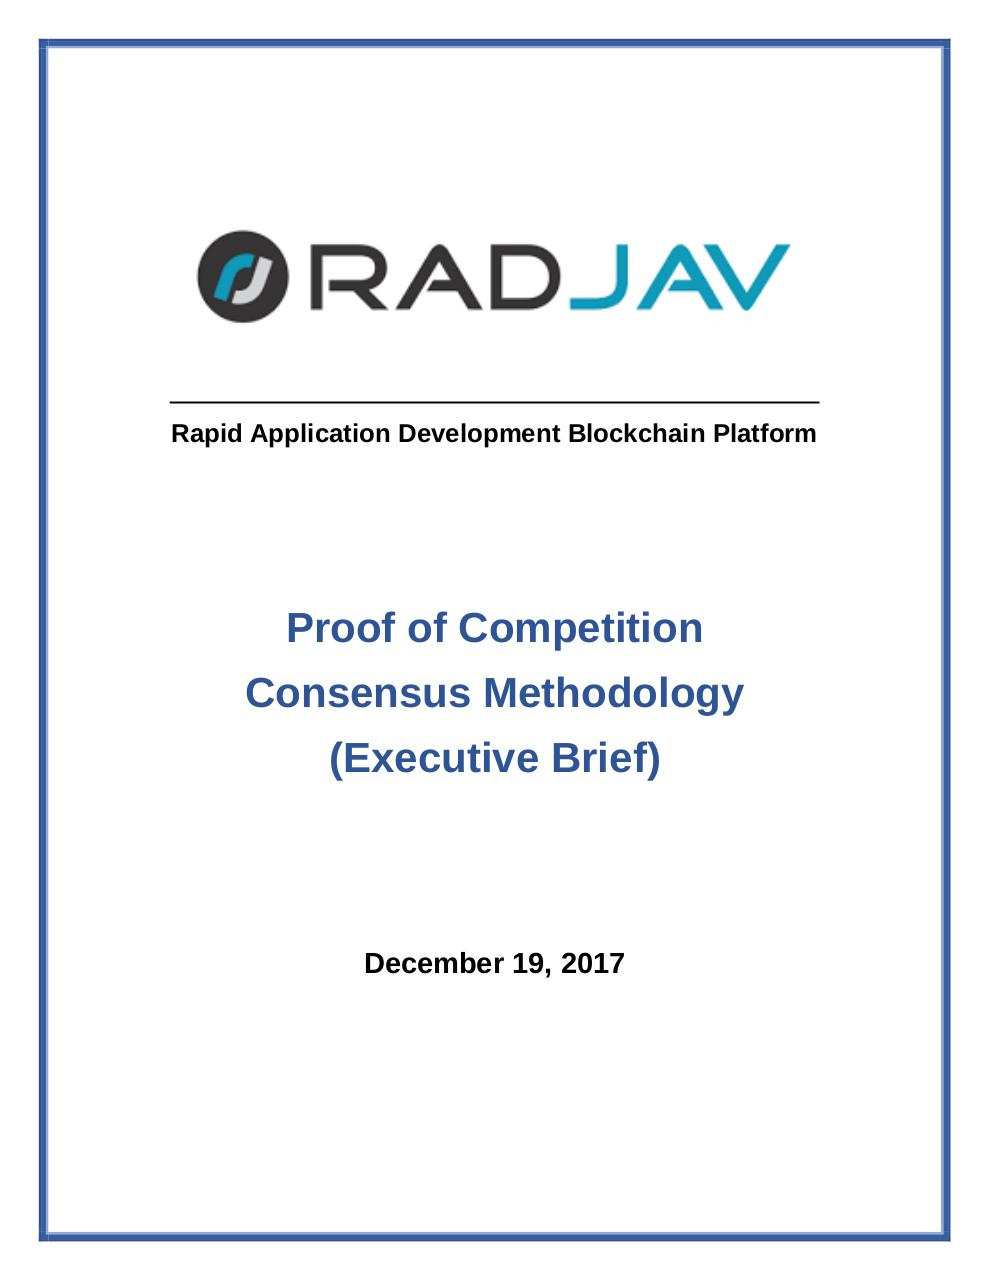 RadJav__Executive_Brief_on_Proof_of_Competition_Consensus_Methodology.pdf - page 1/6